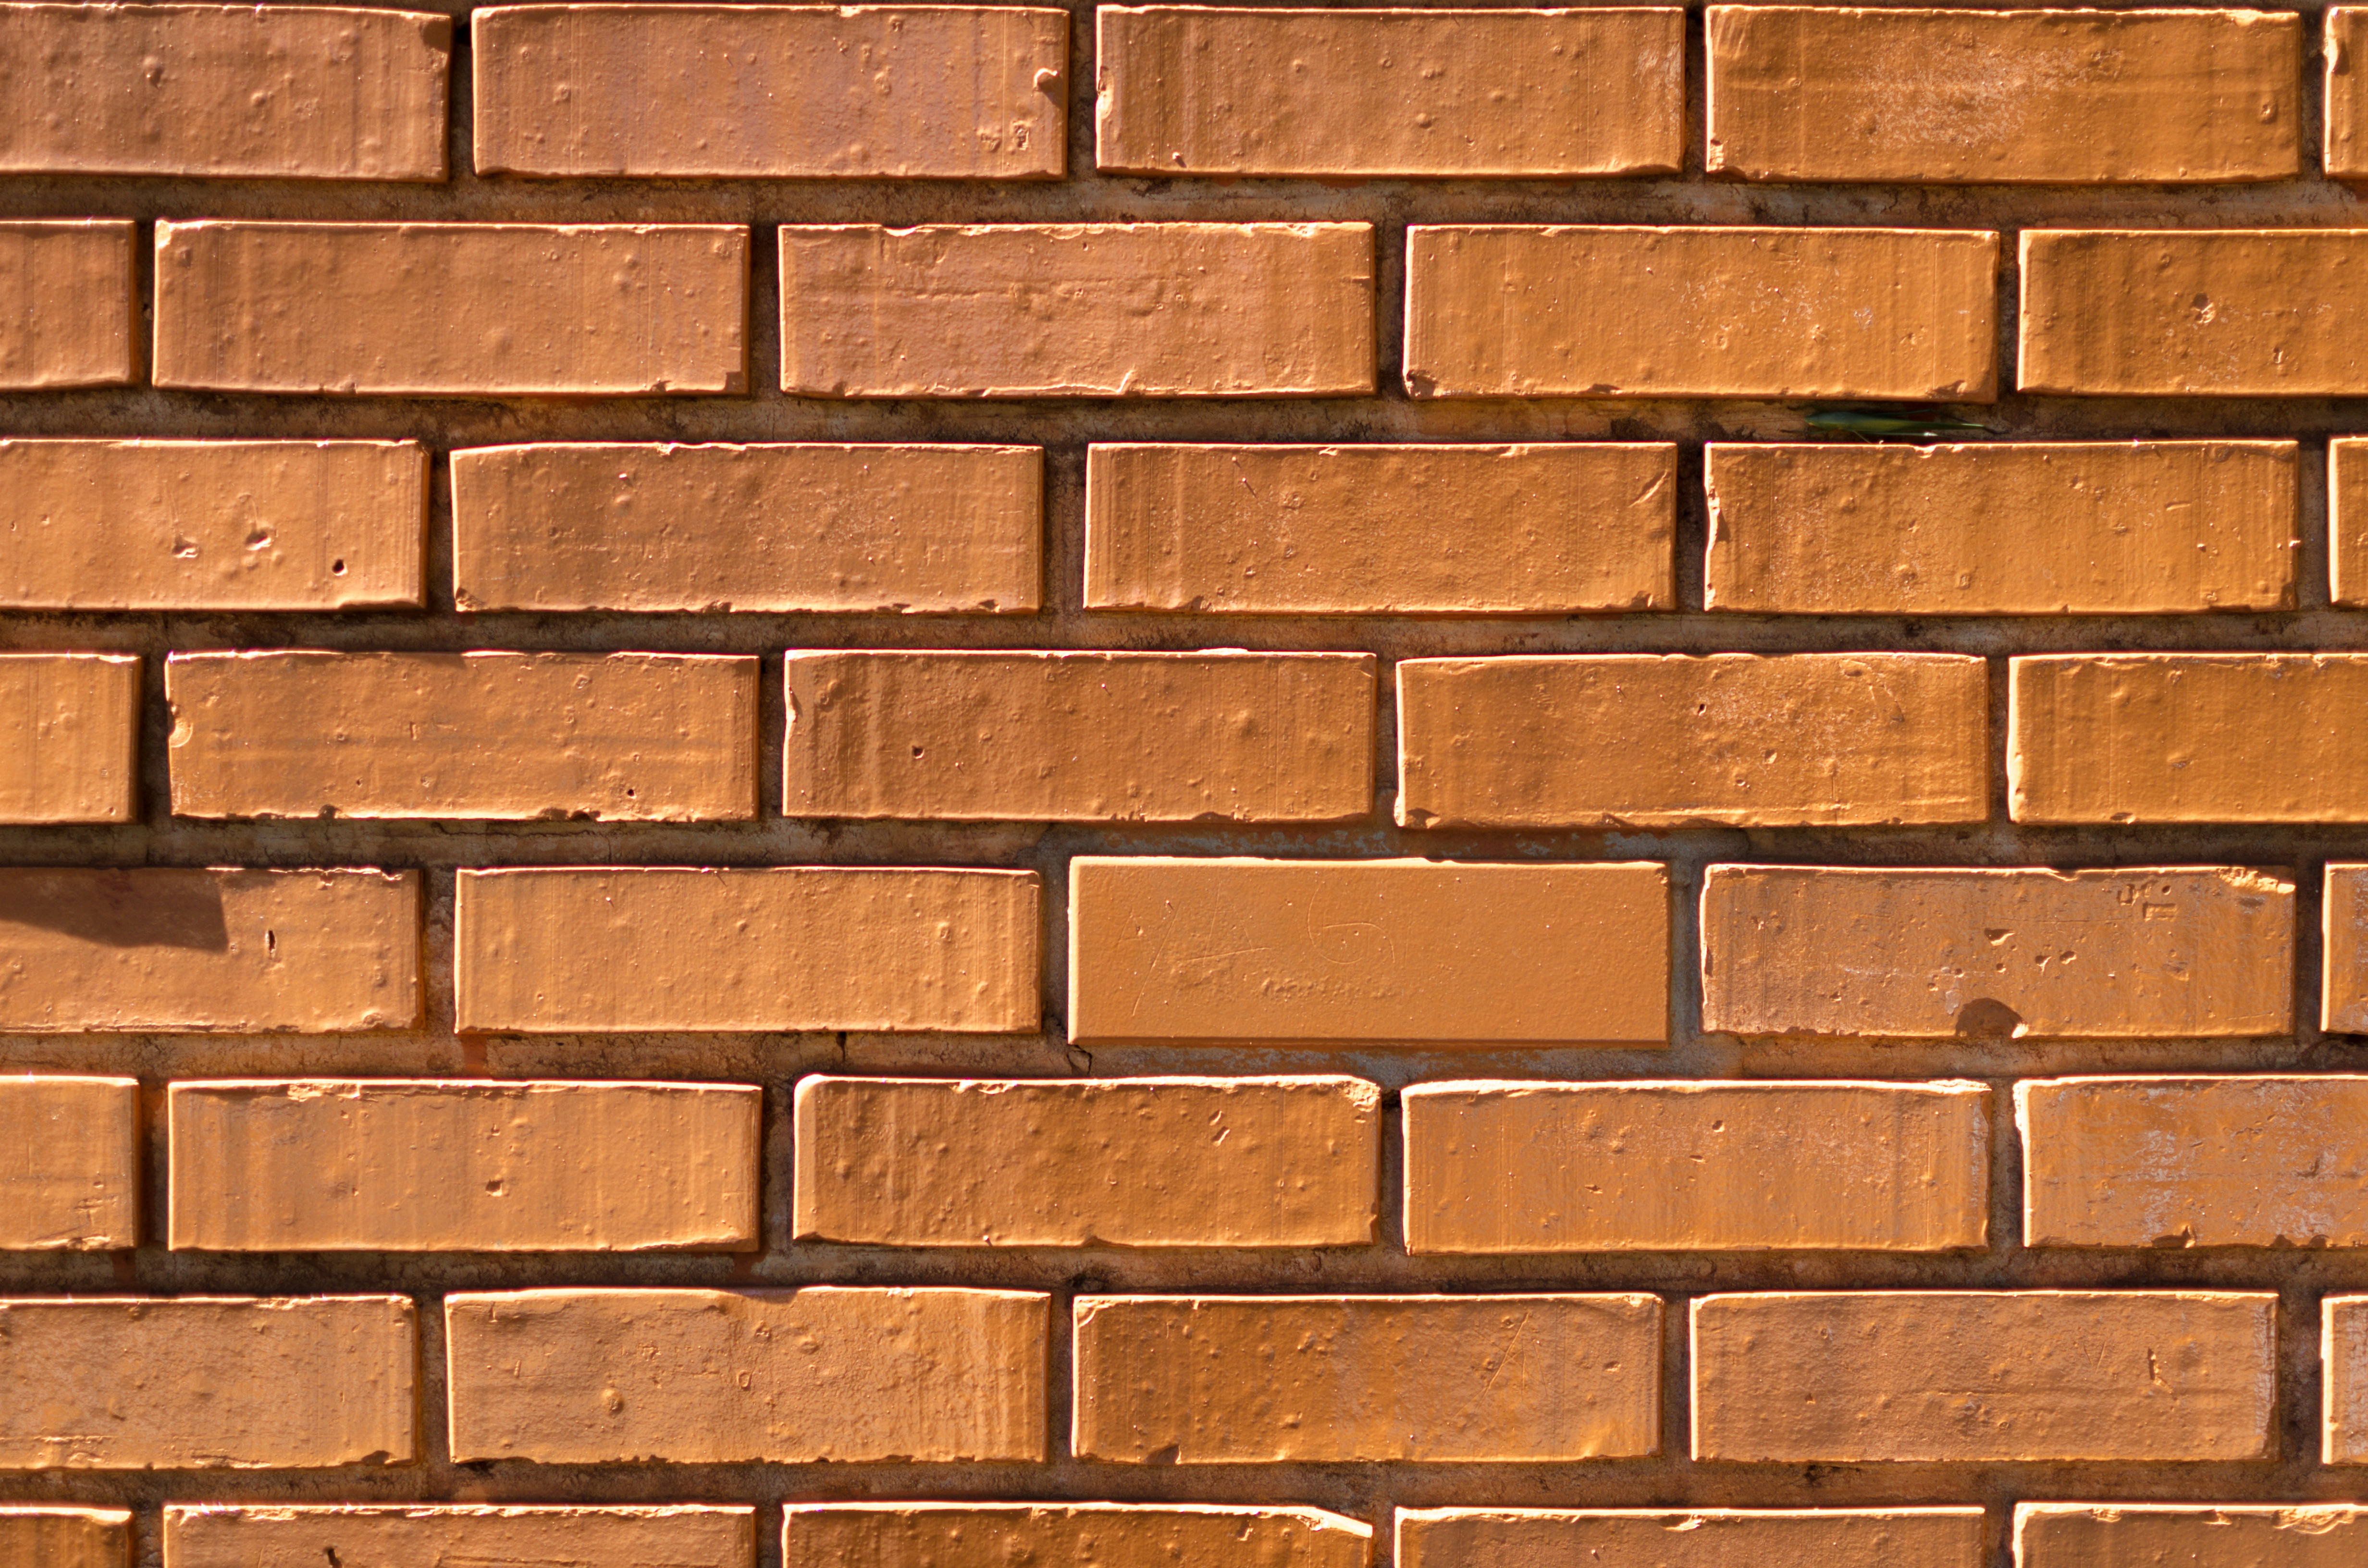 Mobile Wallpapers Hd For Samsung Brown Wooden Door Near White Brick Wall 183 Free Stock Photo